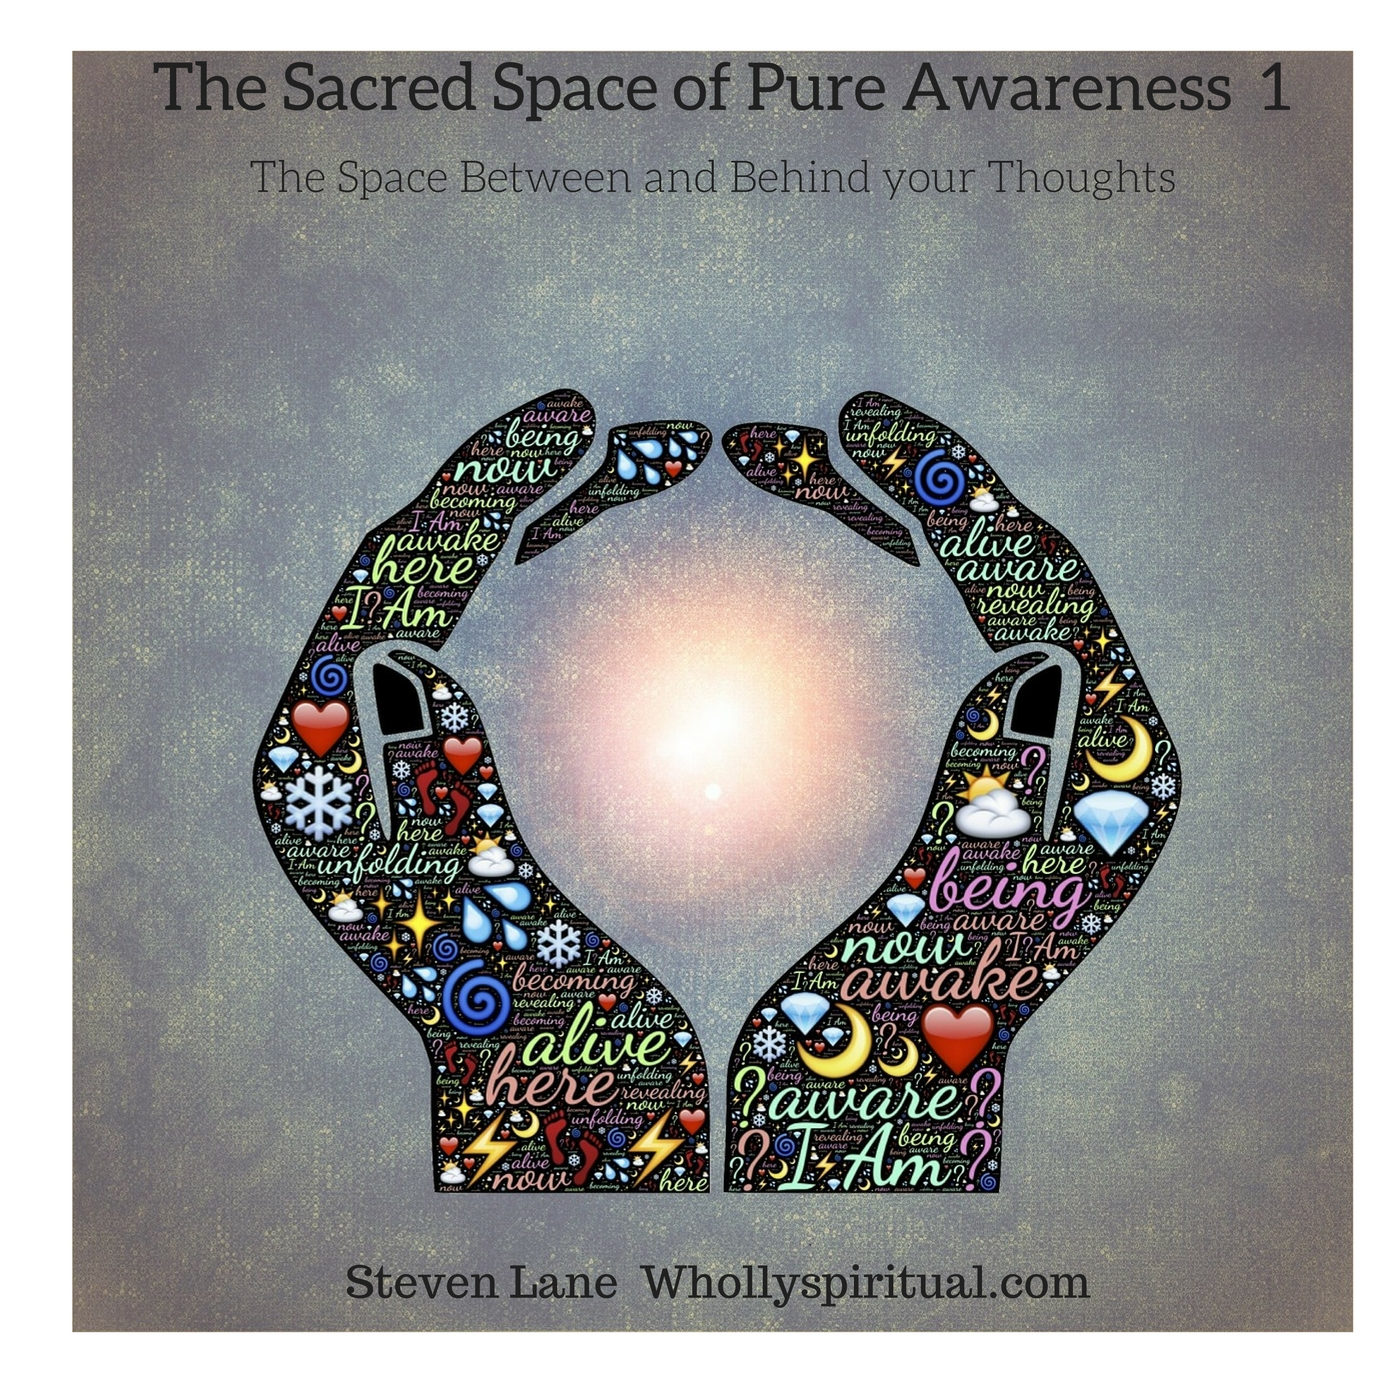 The Sacred Space of Pure Awareness Vol 1 Image